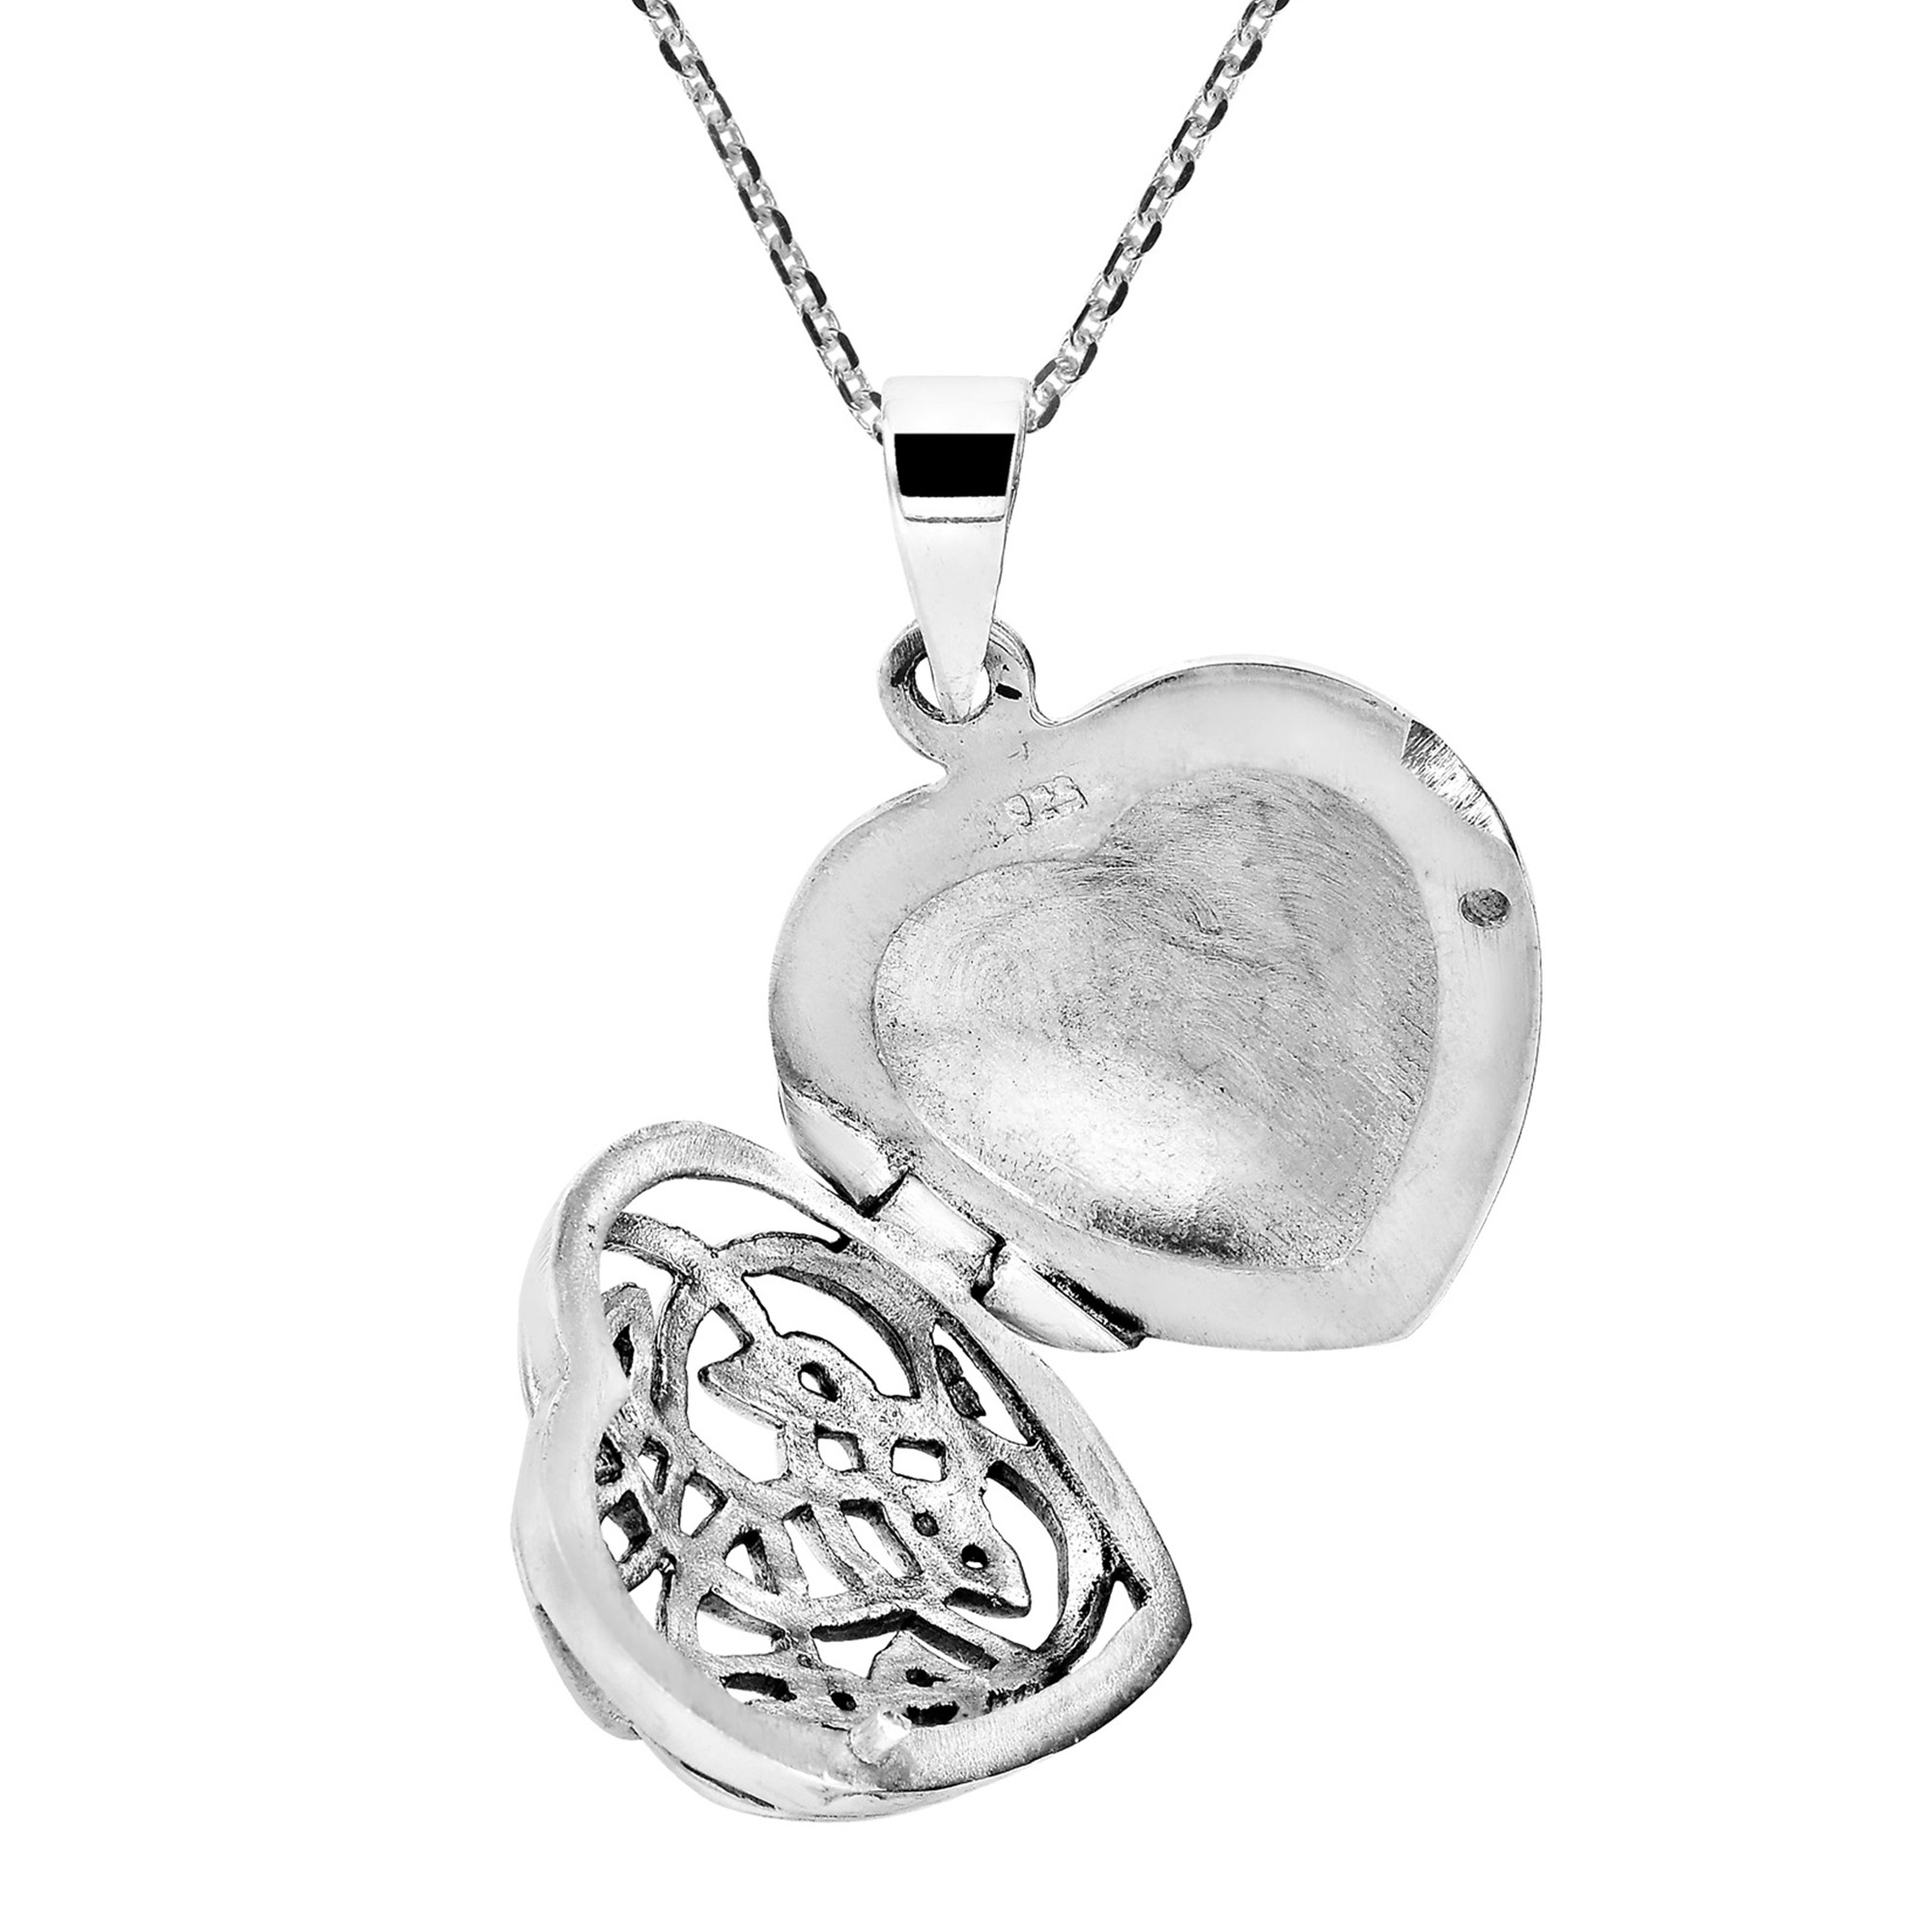 silver sterling p lockets locket heart knot celtic htm shaped engraved